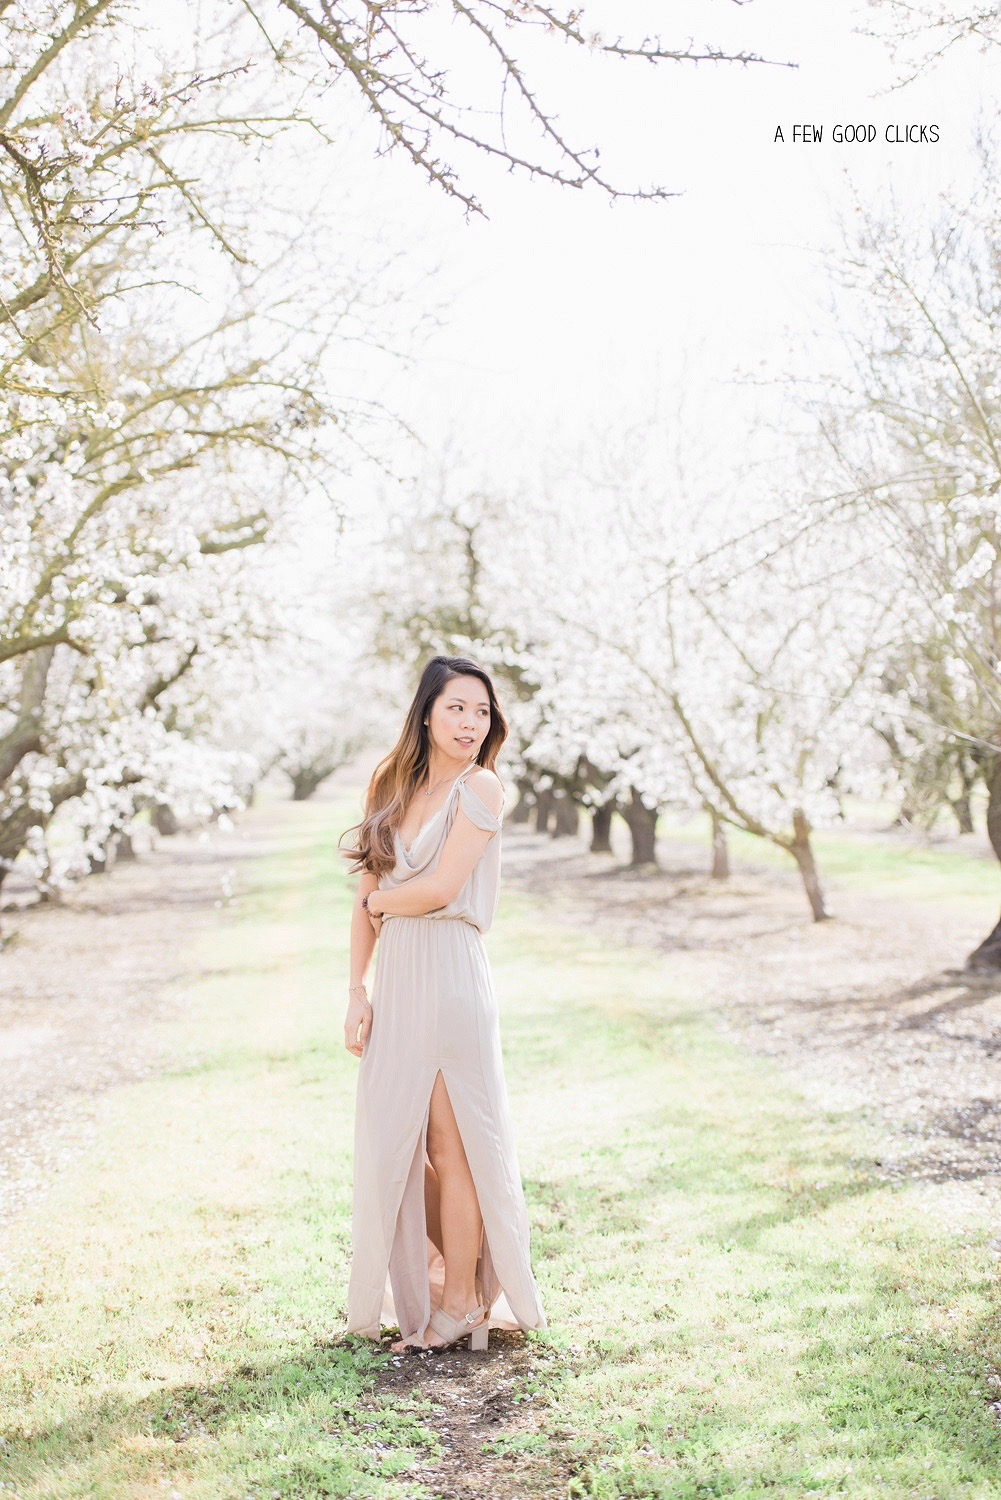 High fashion solo portrait at Almond orchards near Hughson, CA